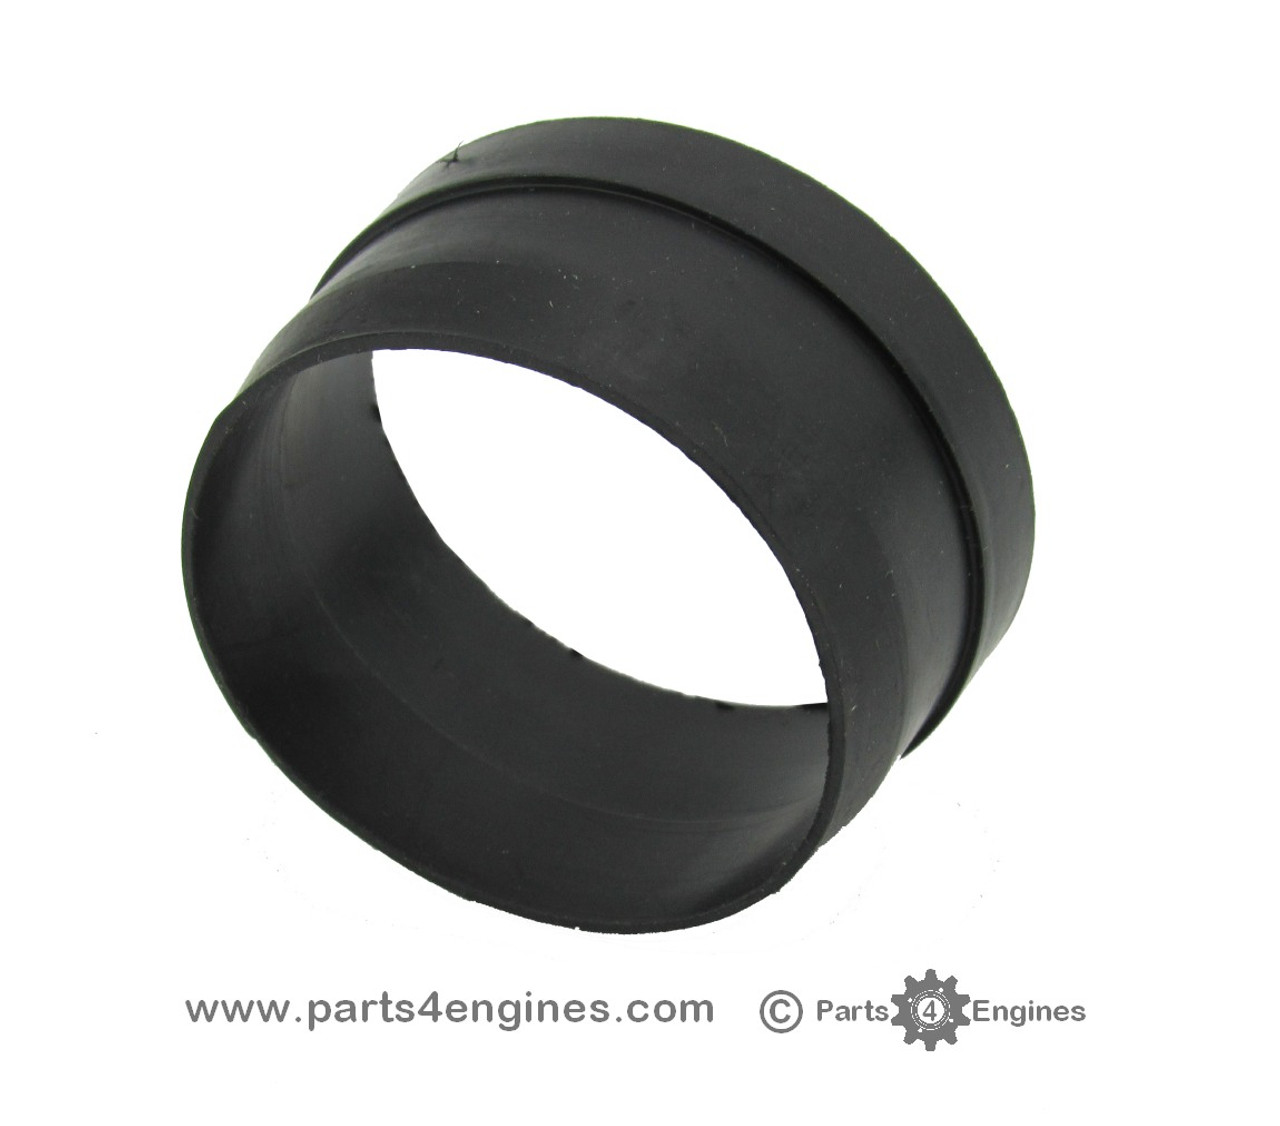 Perkins Prima M50 Heat exchanger tube stack seal from parts4engines.com